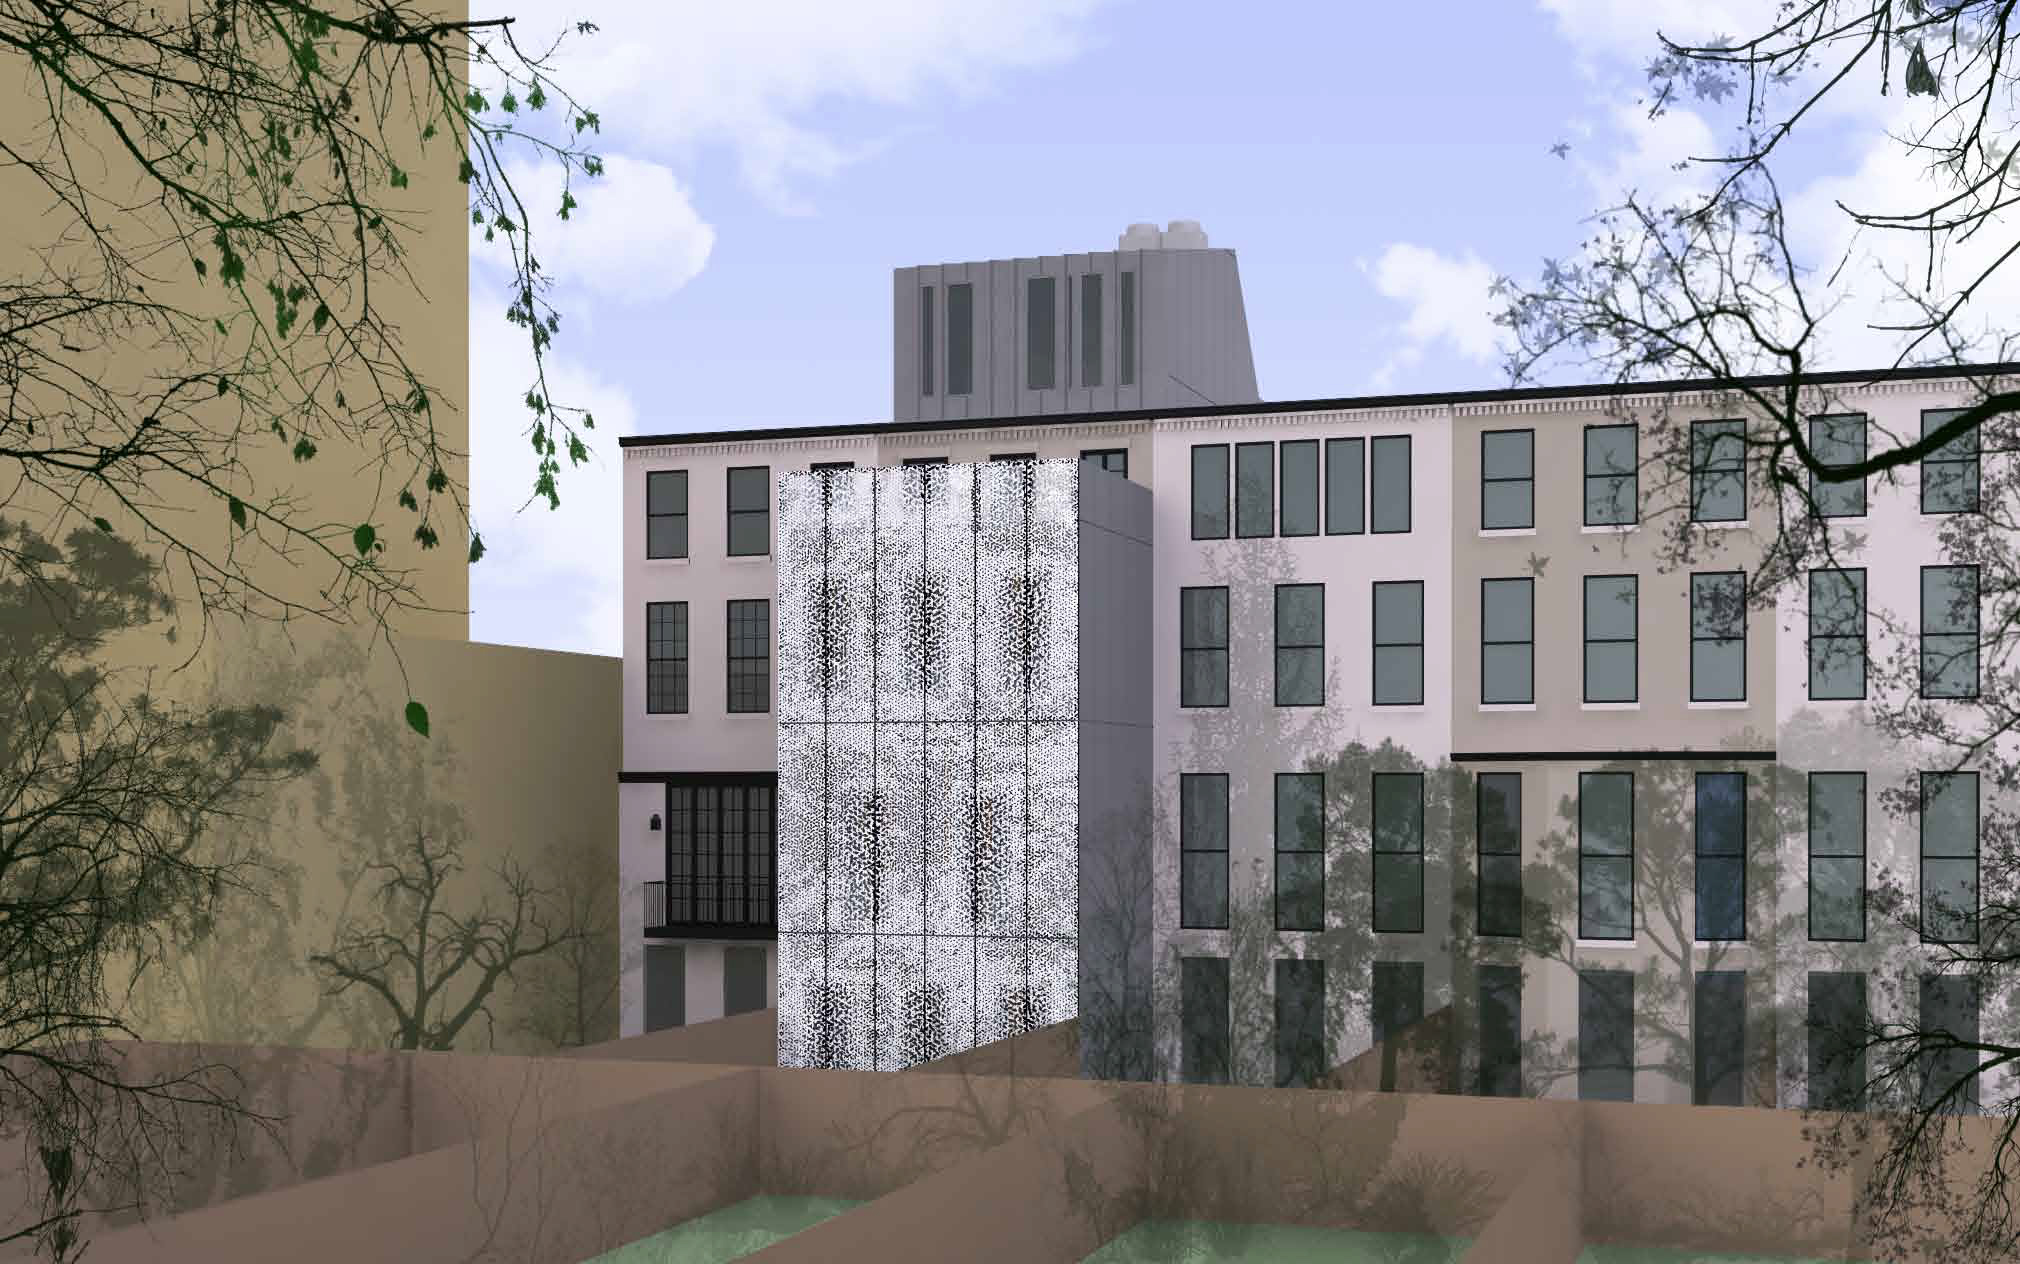 Proposed rear of 210 East 62nd Street, with shutters closed